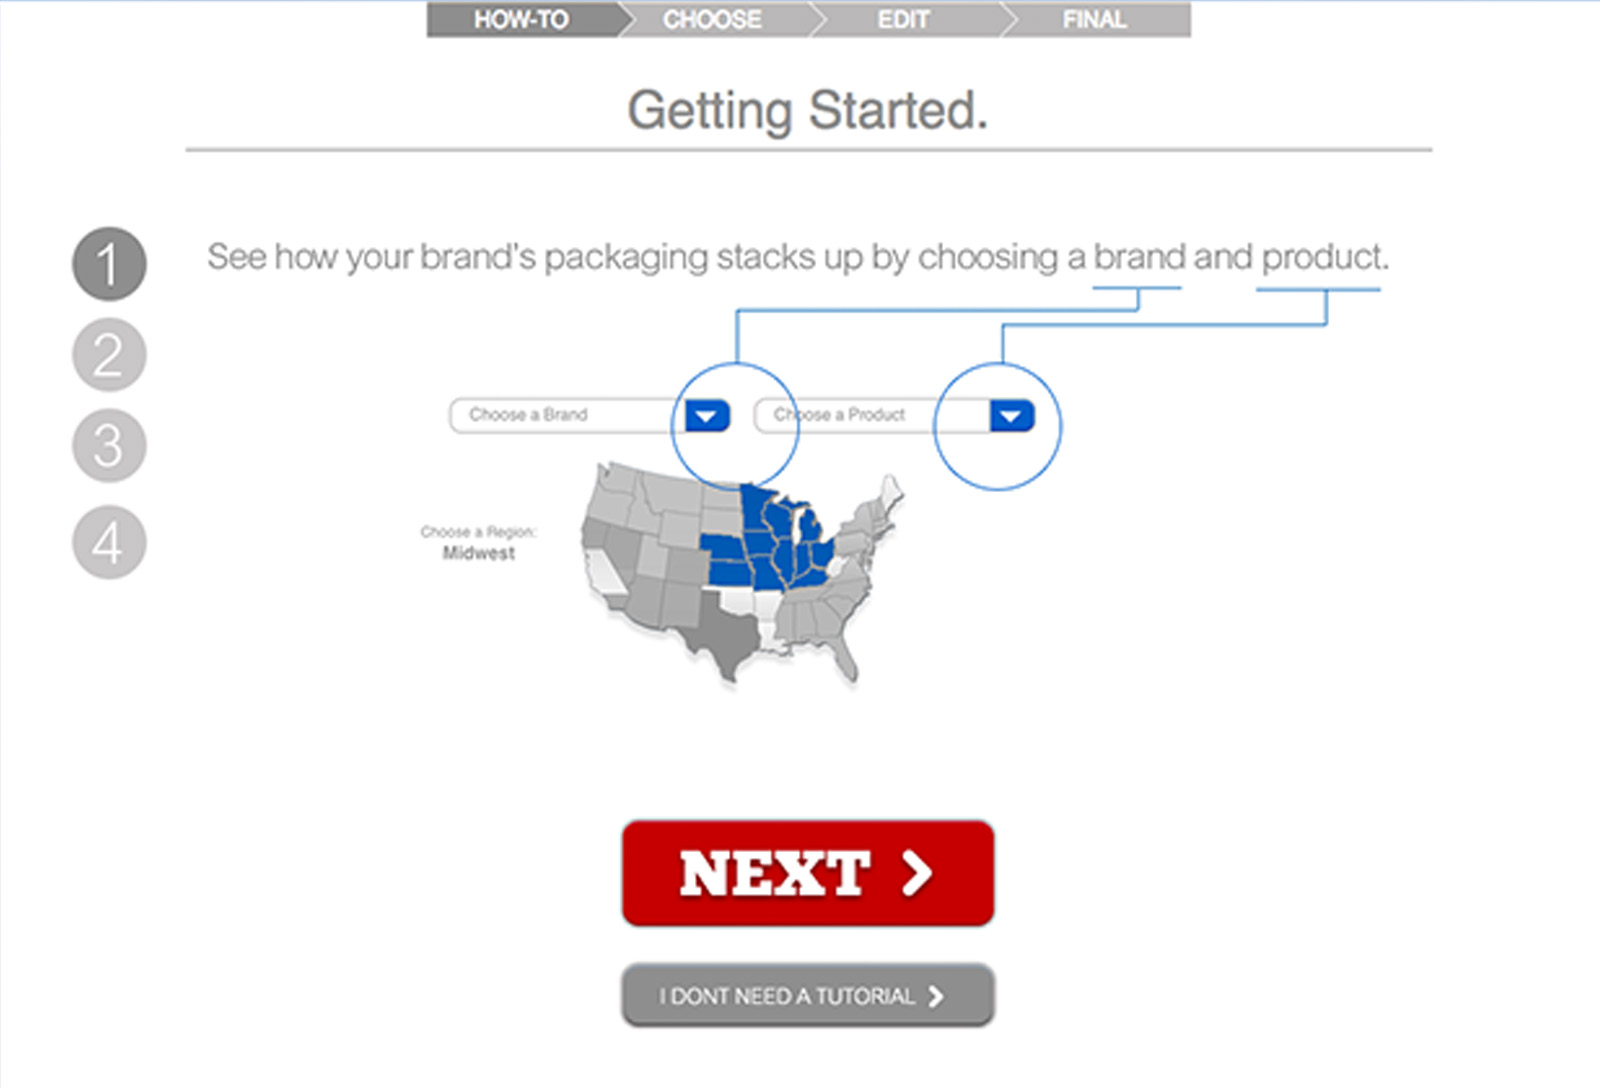 The tool showcases the different Costco zones.